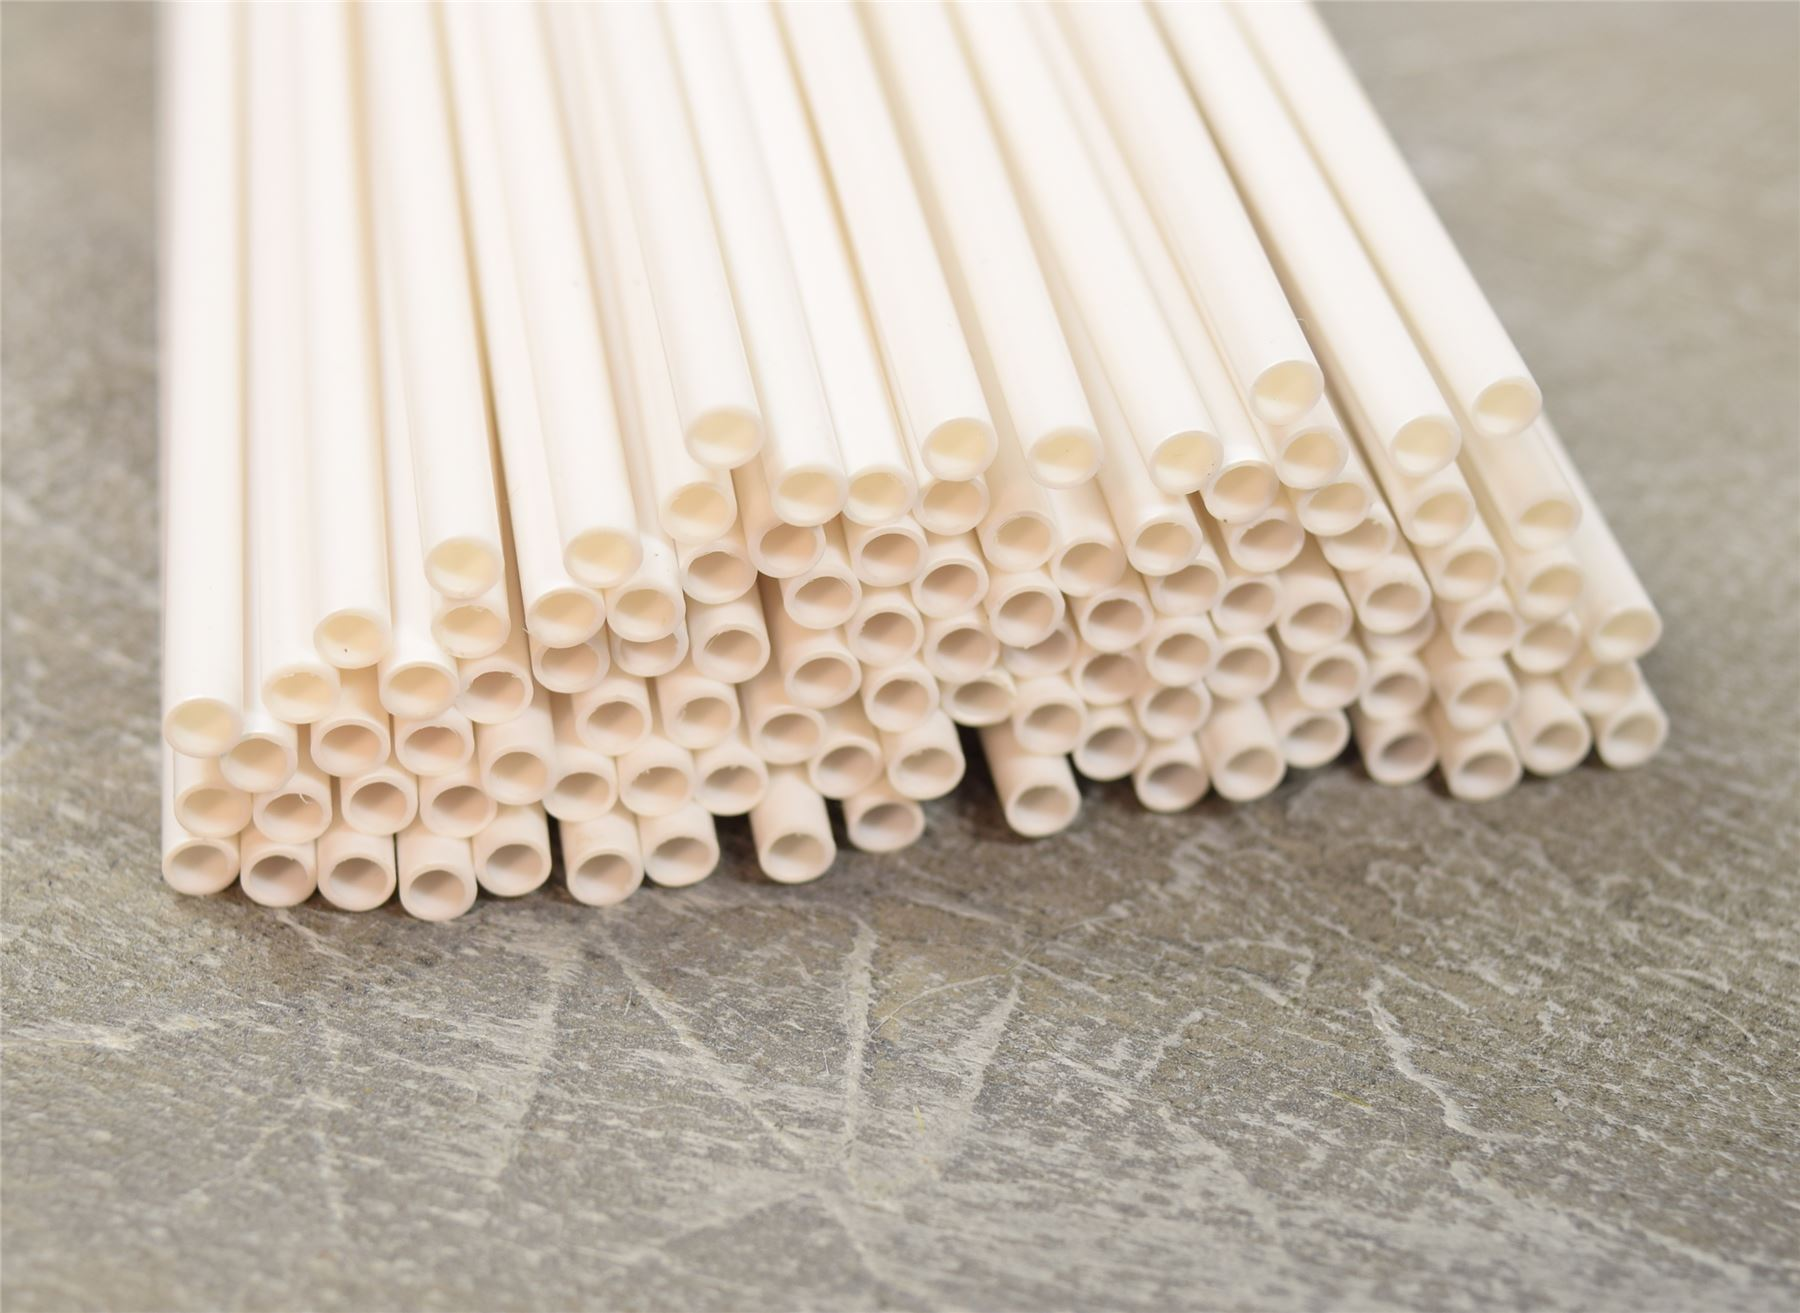 WWS Round ABS Plastic Tube (250mm x 4mm) – Architecture Railway Model Making